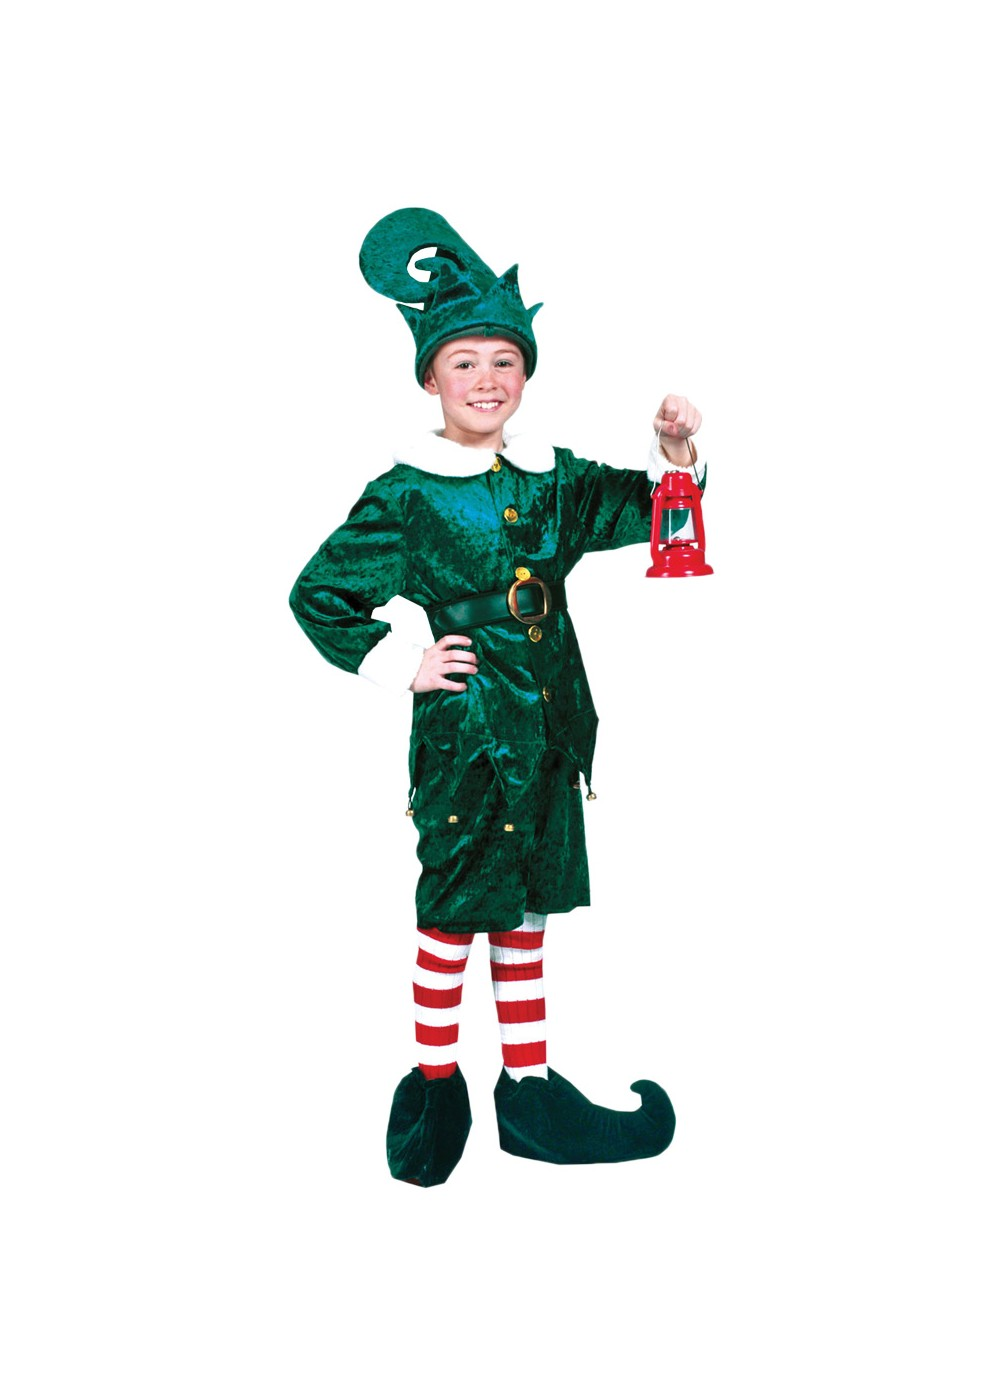 Kids Childs Holly Jolly Elf Costume